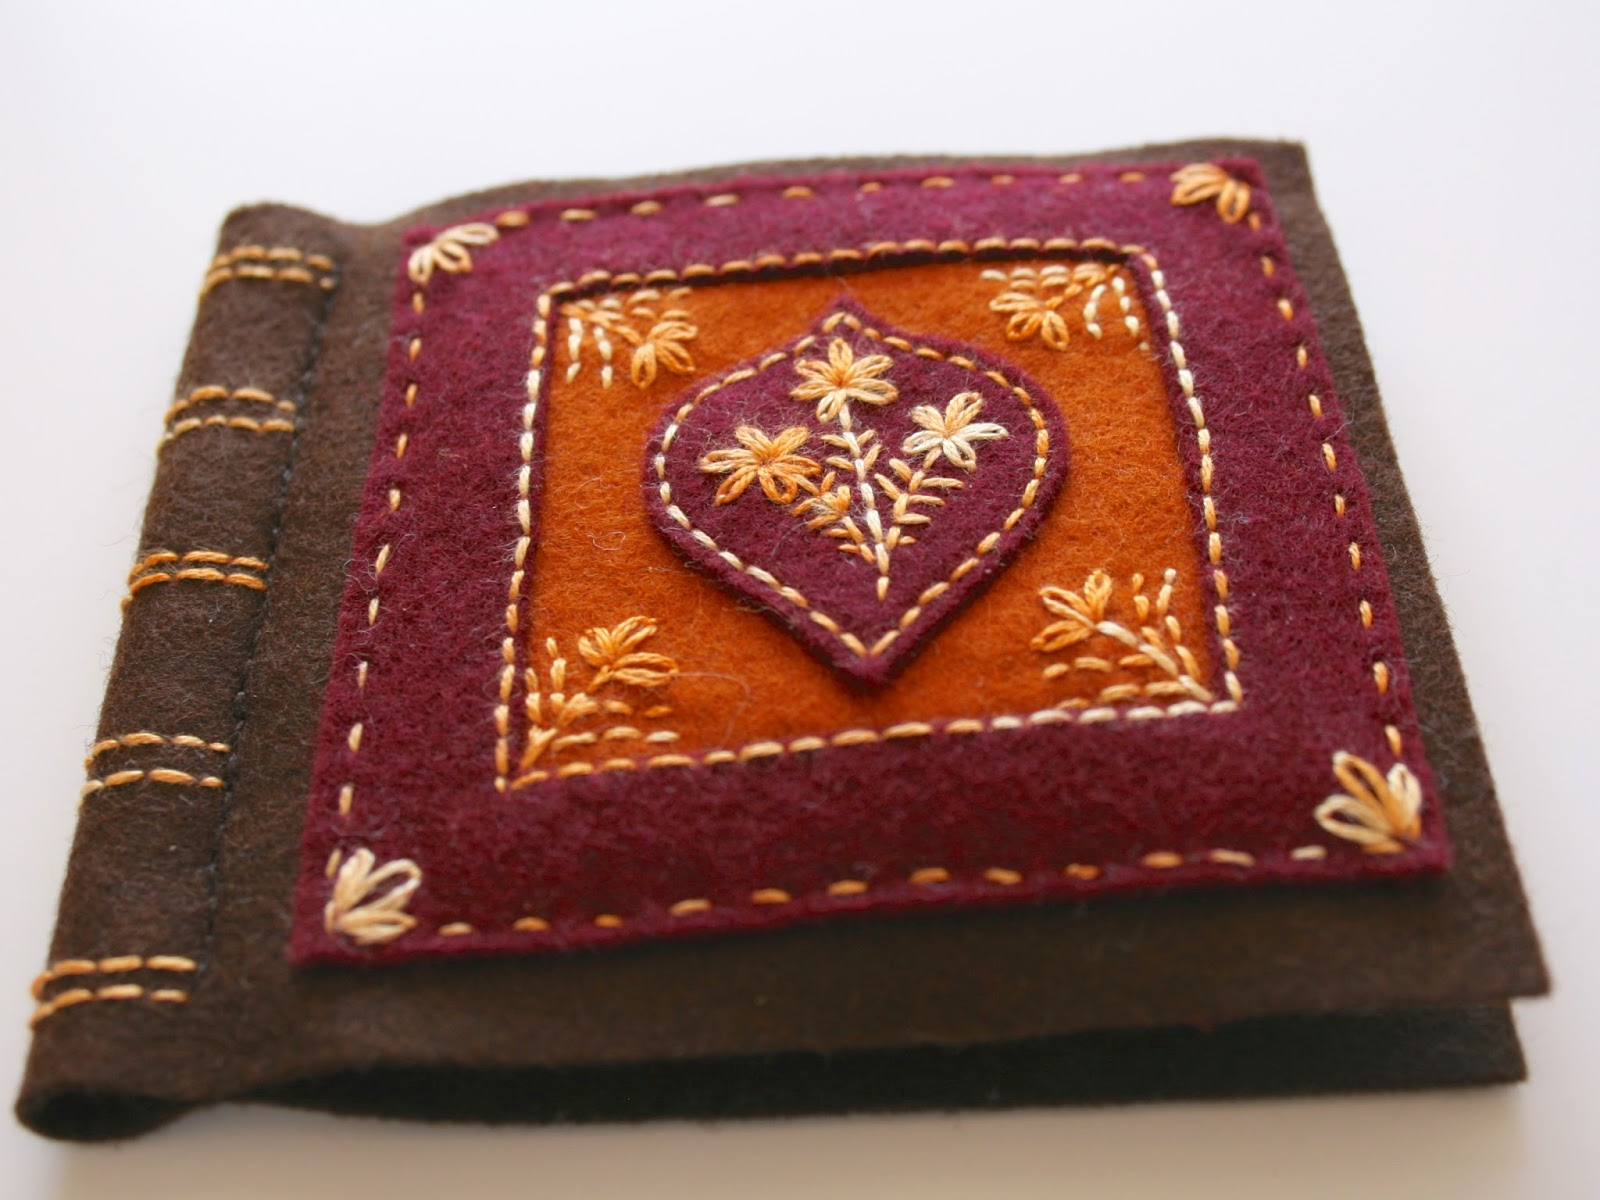 felt needle book